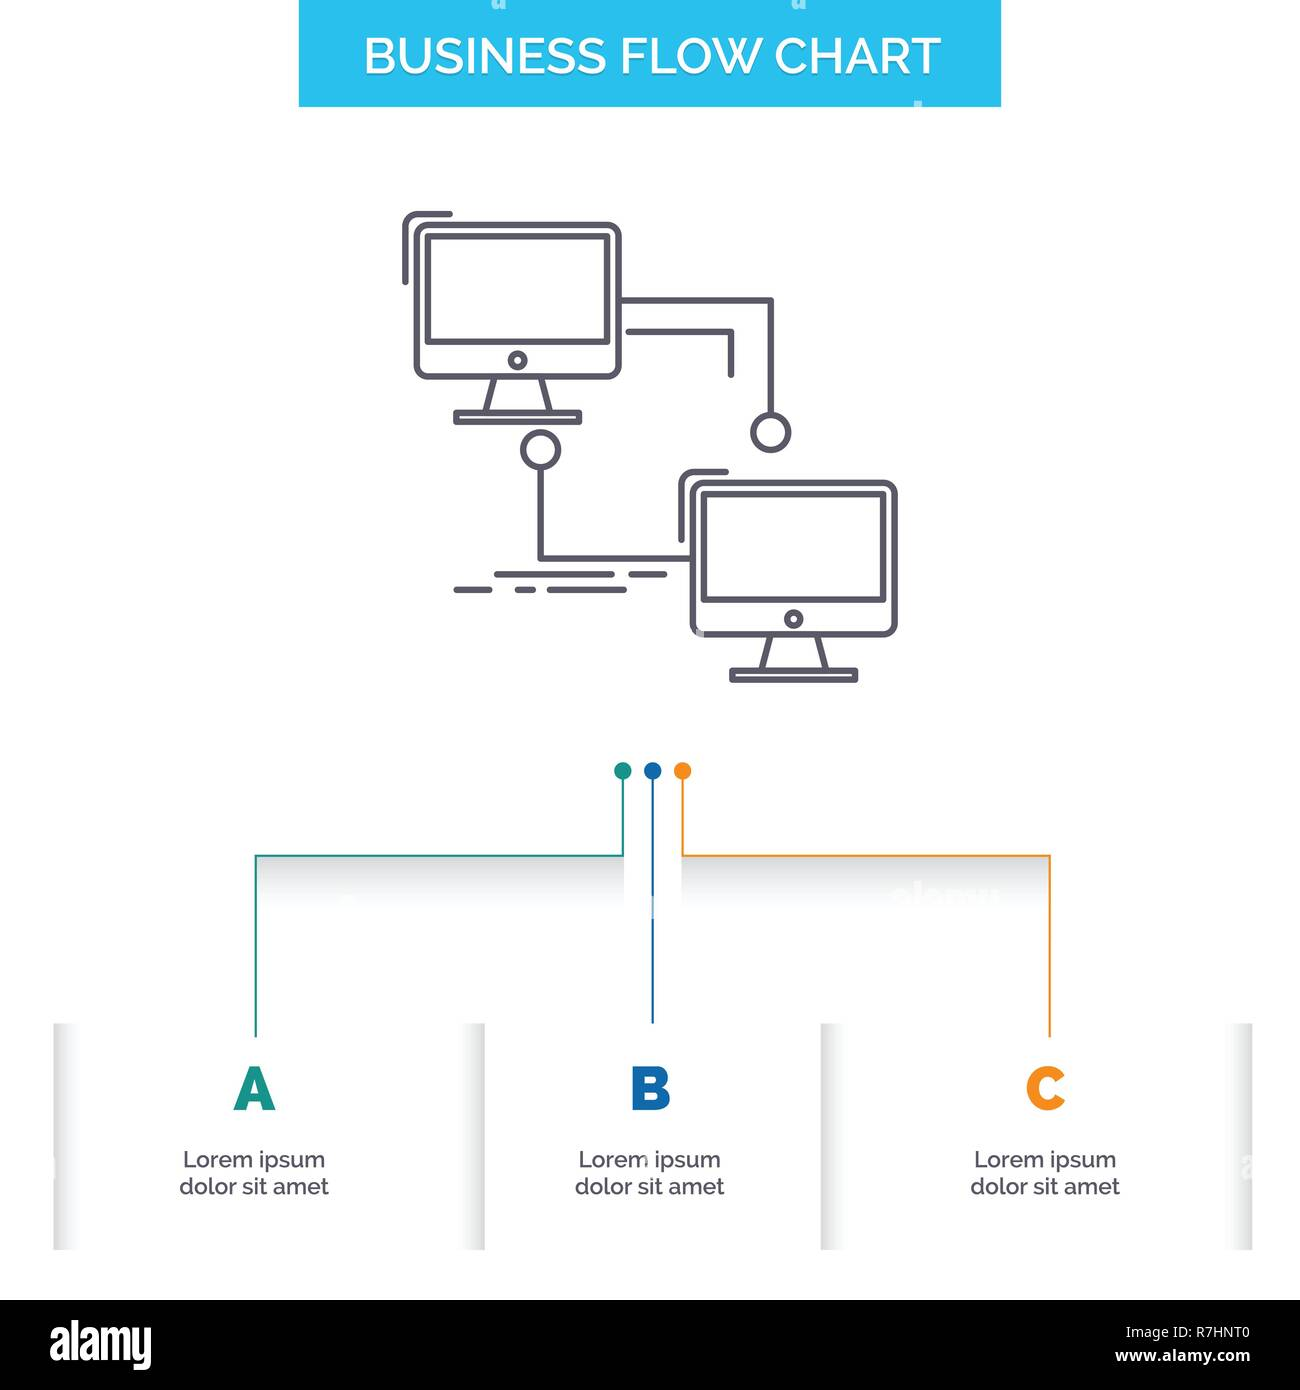 hight resolution of local lan connection sync computer business flow chart design with 3 steps line icon for presentation background template place for text